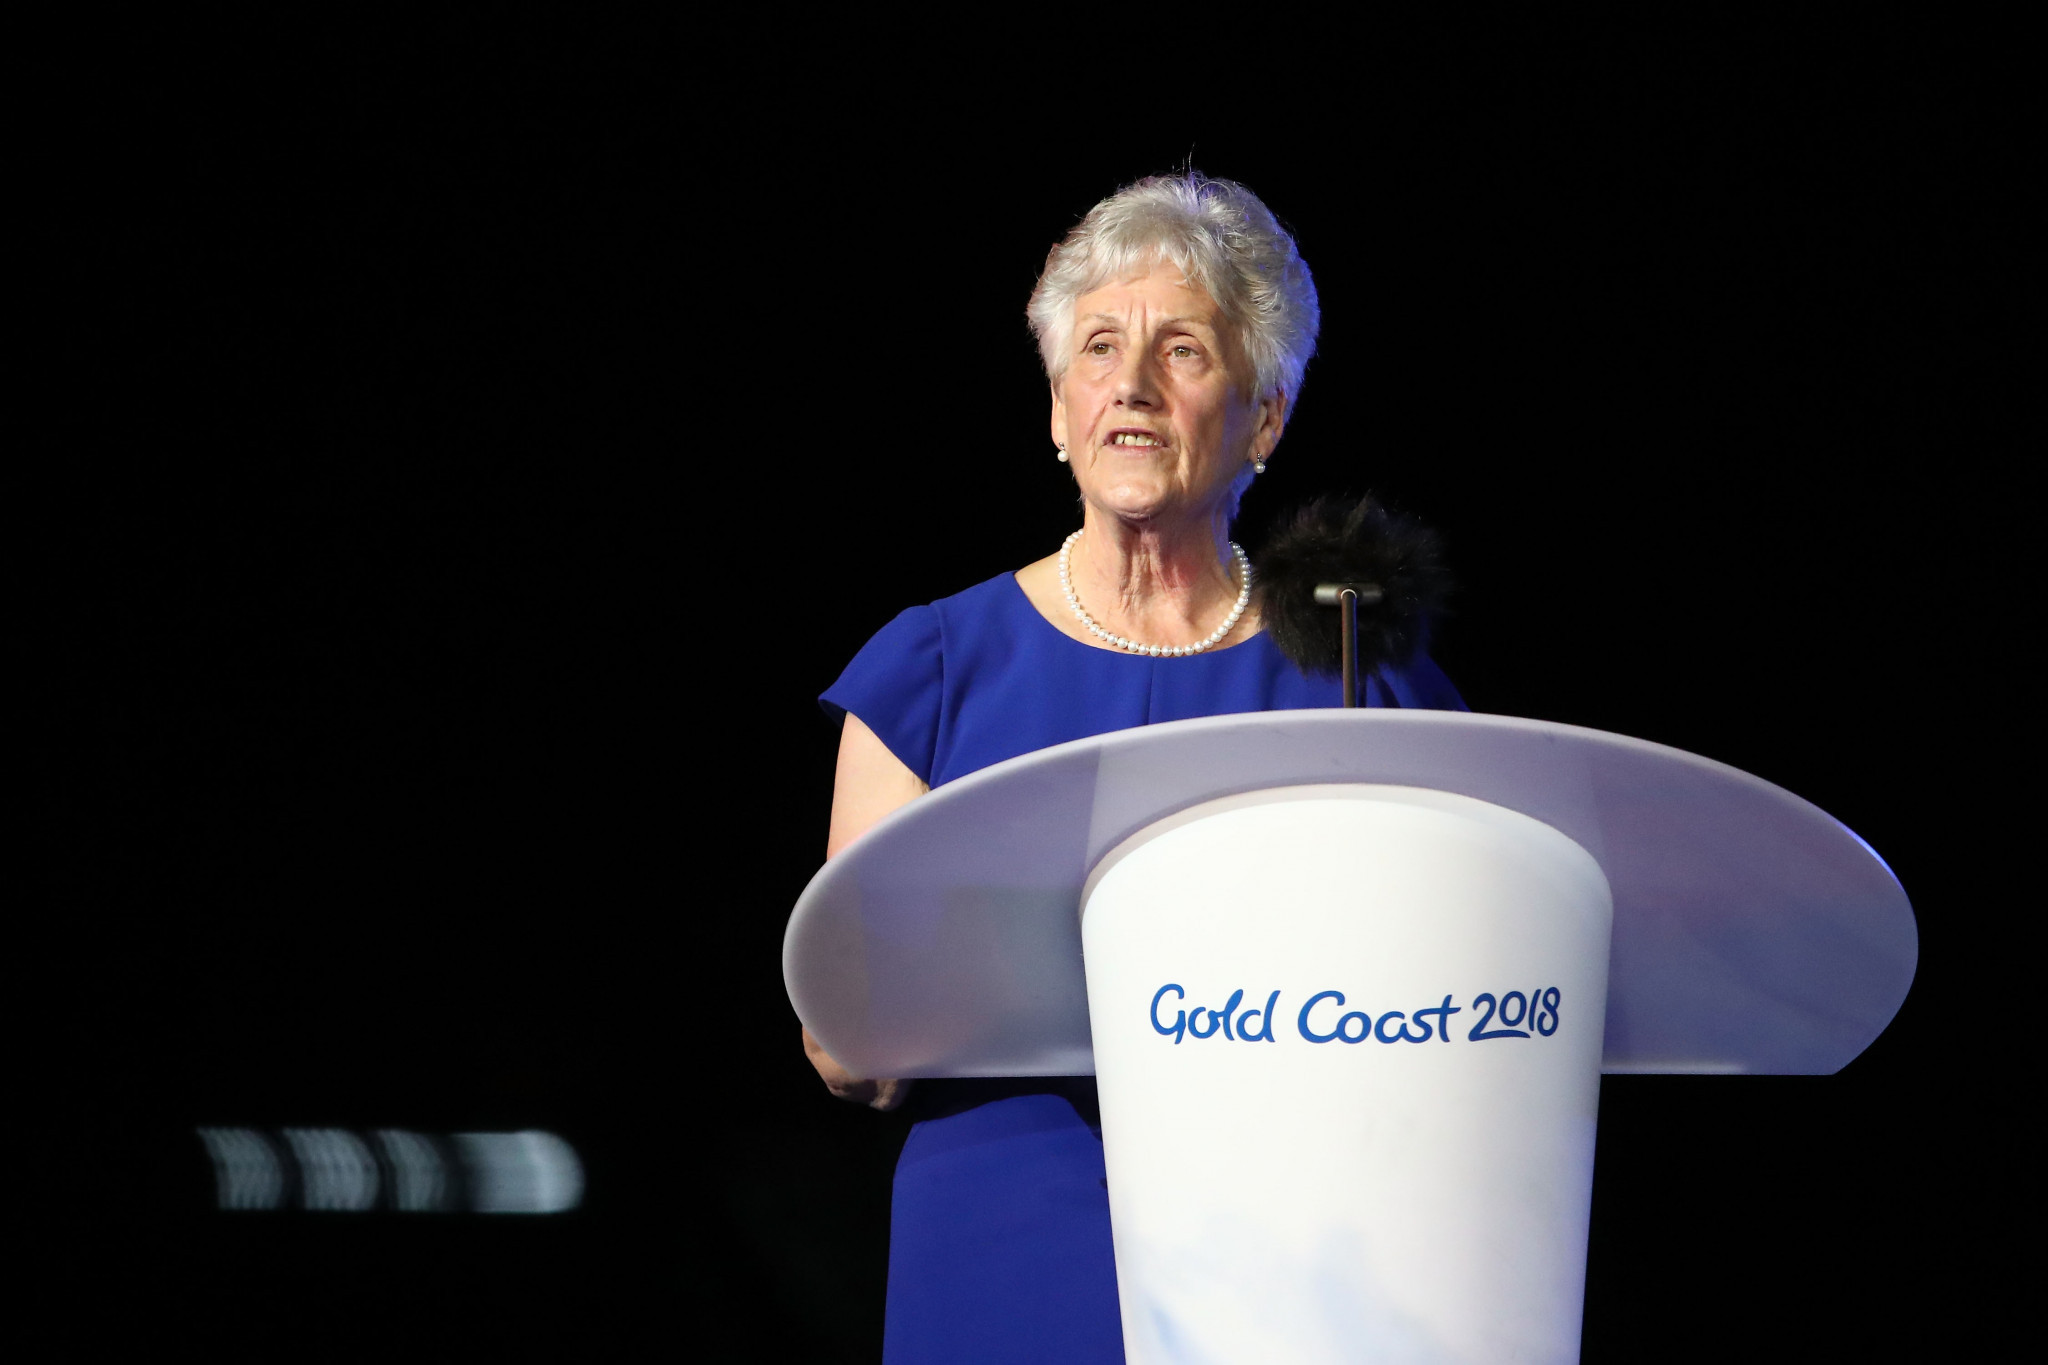 CGF President Dame Louise Martin thanked Games delivery partners for their efforts ©Getty Images